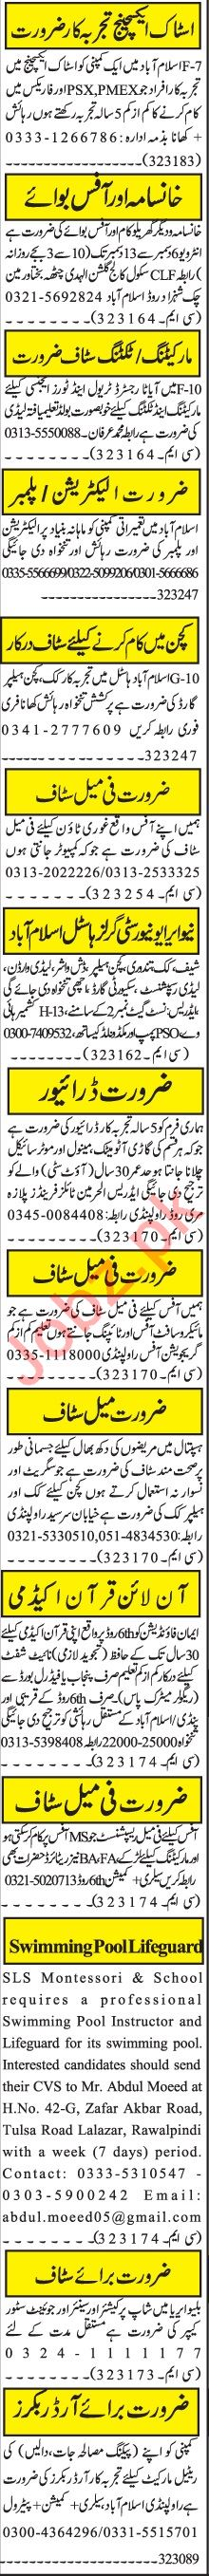 Jang Sunday Classified Ads 6 Dec 2020 for Management Staff